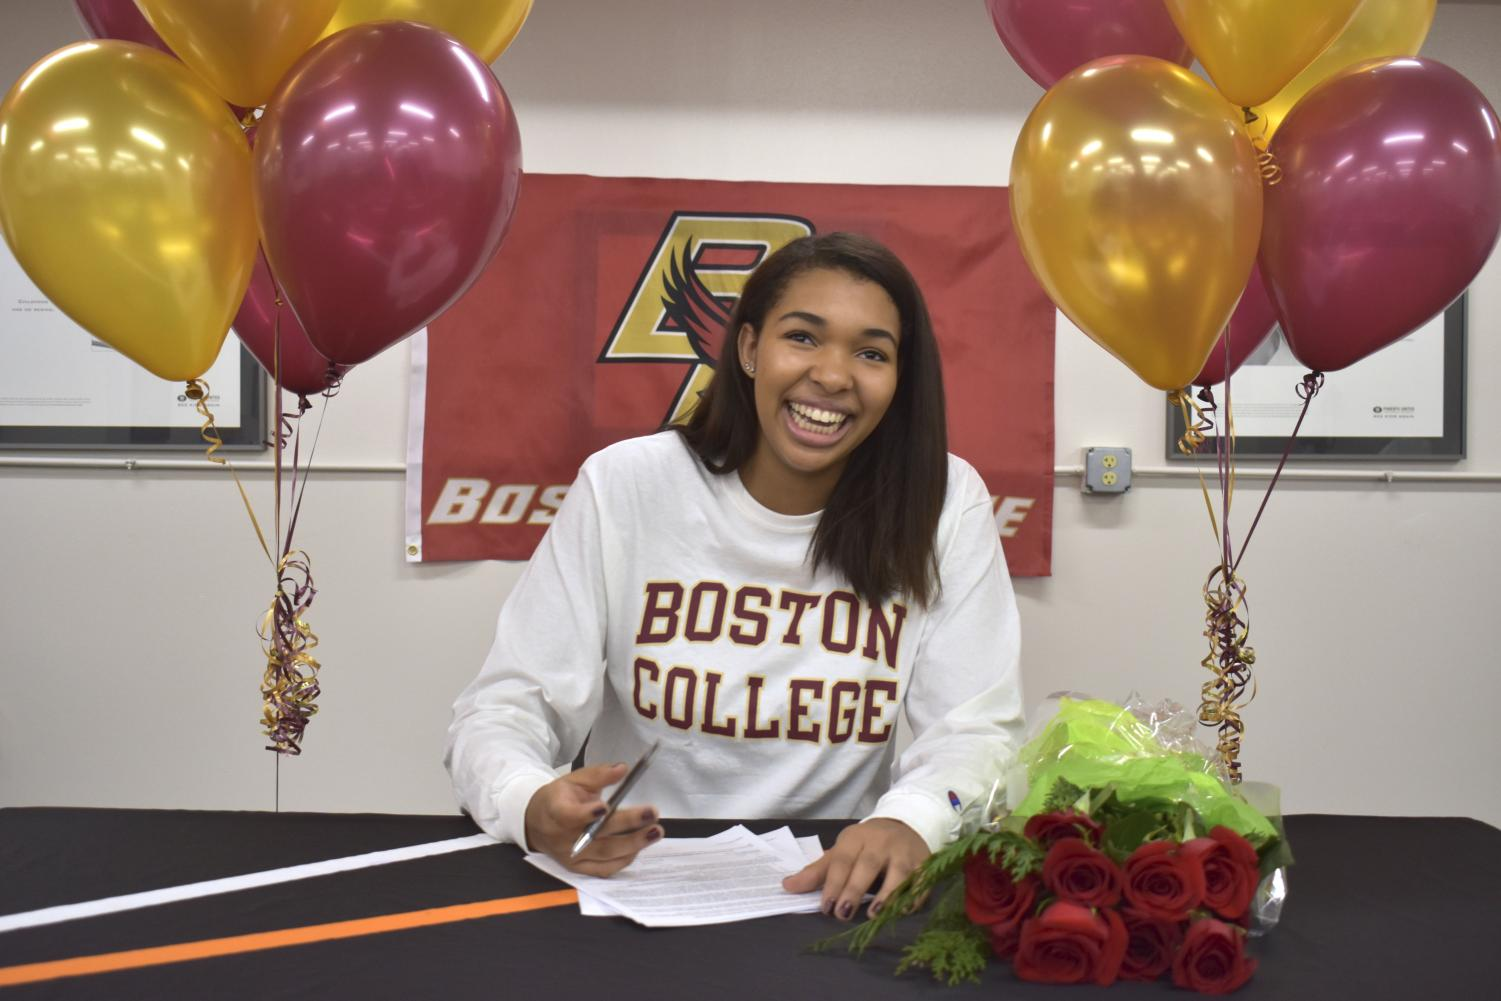 Senior Gabby McCaa signs a contract to play D1 volleyball at Boston College. McCaa was first committed to the University of Southern California, but then changed her mind.